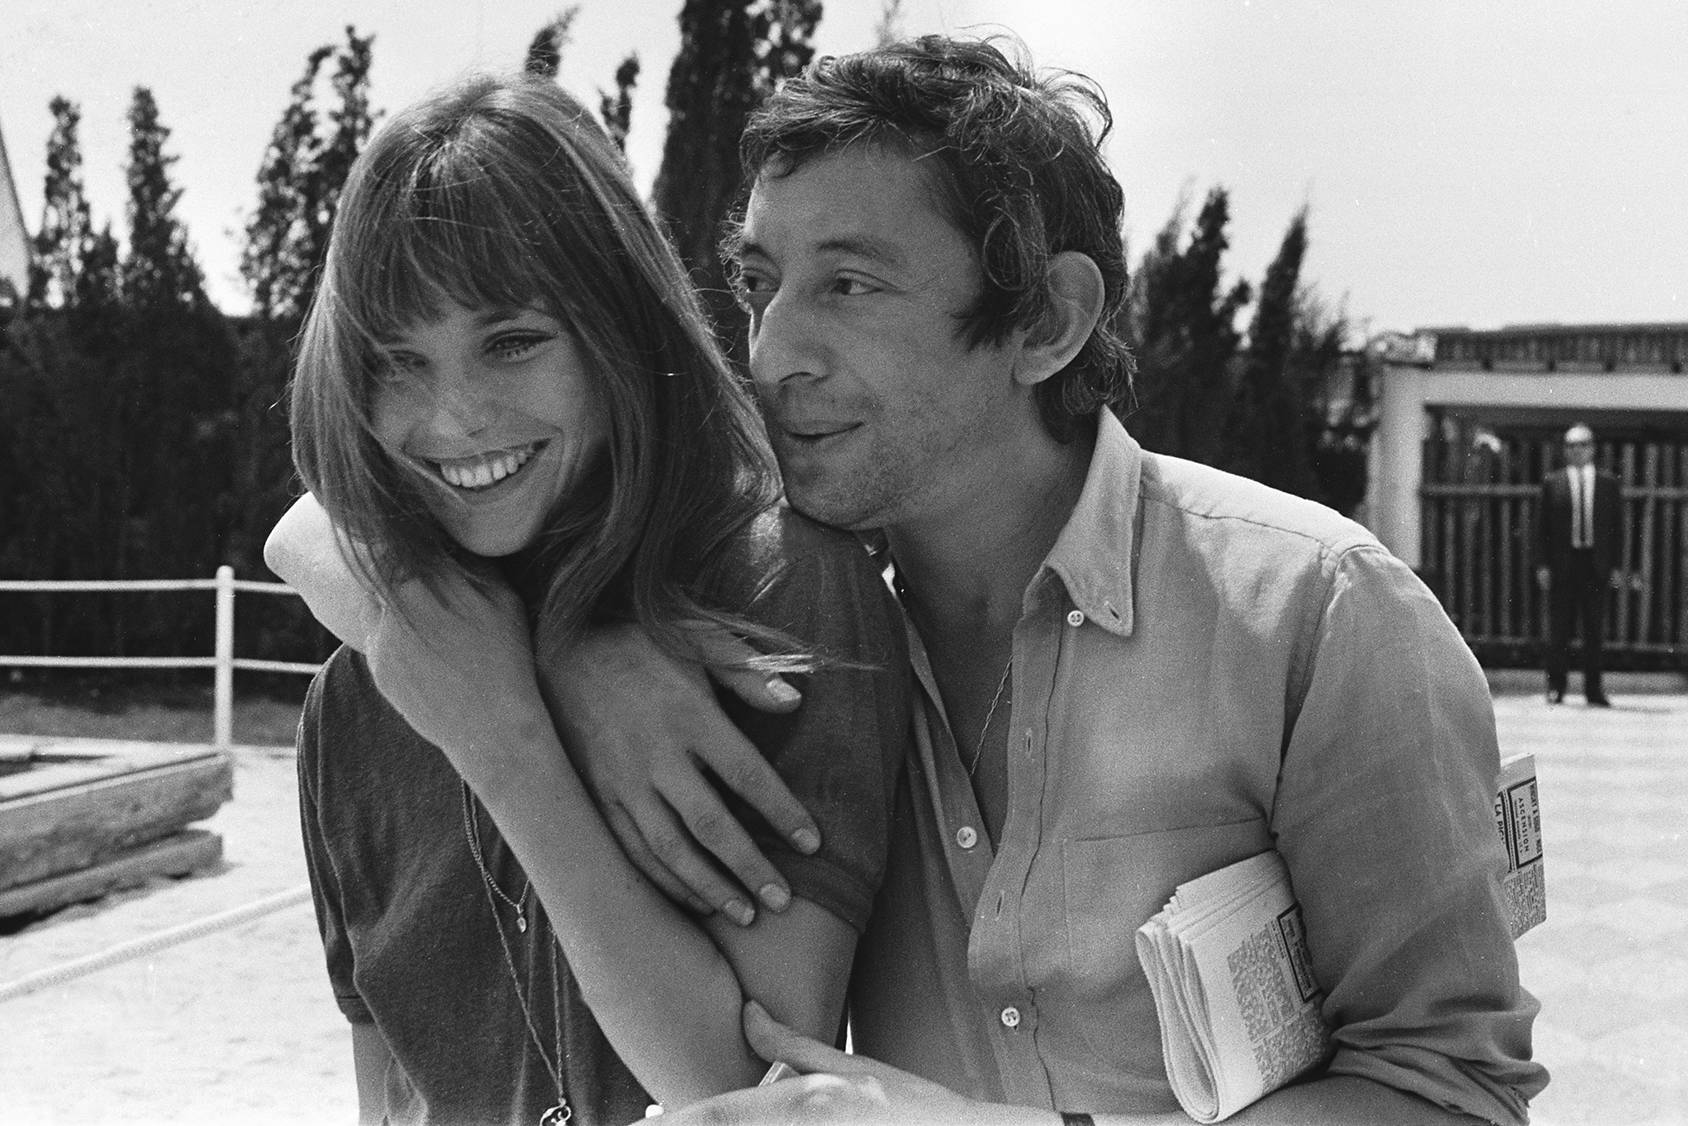 Fashionable and in love, Jane Birkin and Serge Gainsbourg, Getty Images.